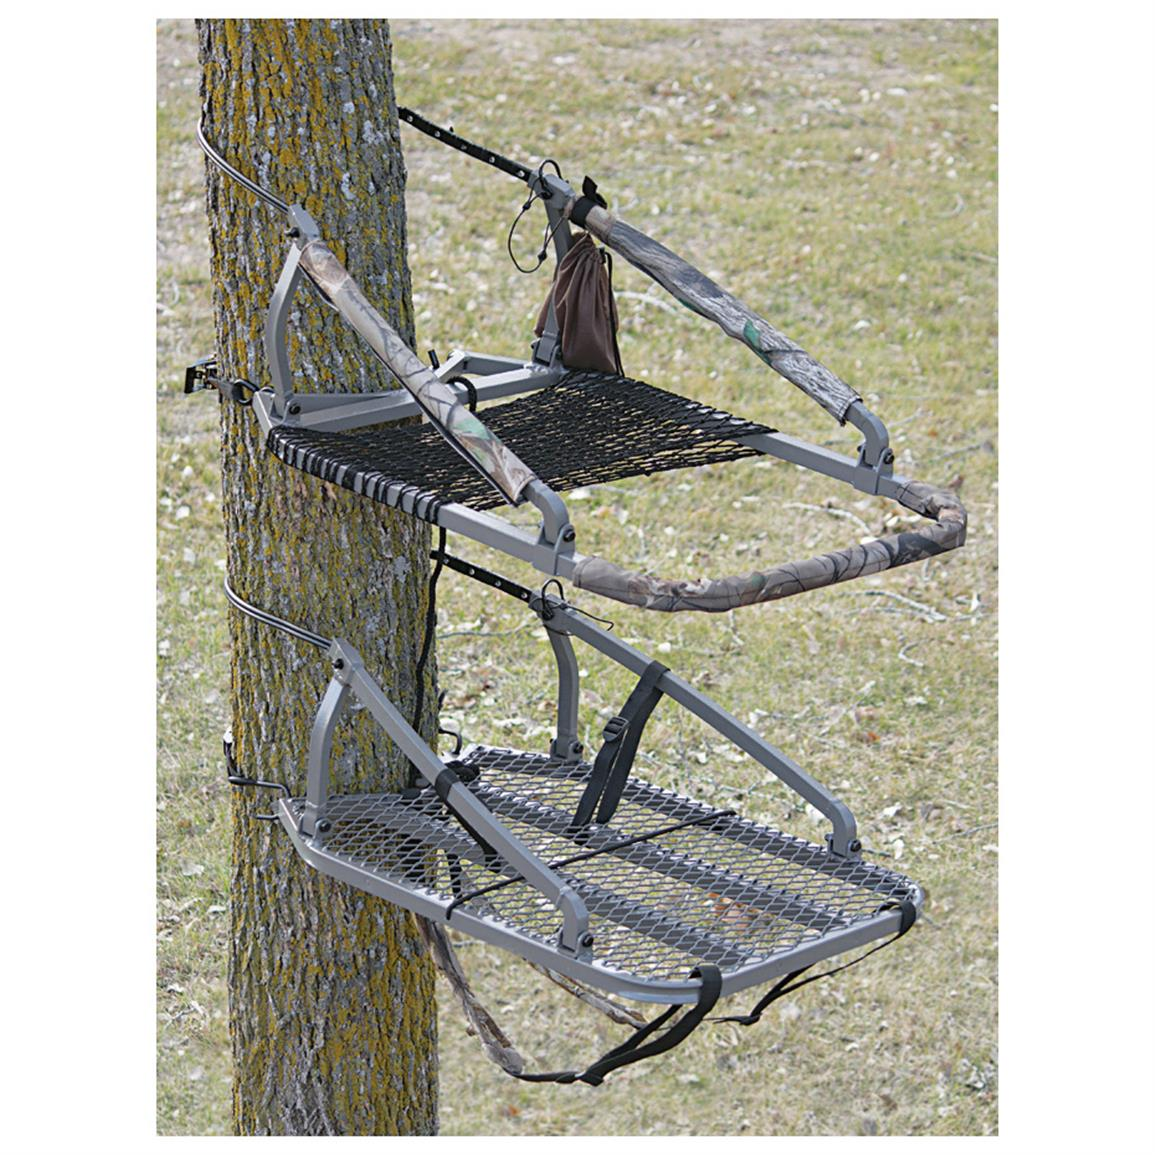 Sniper Insider Deluxe Climber Stand